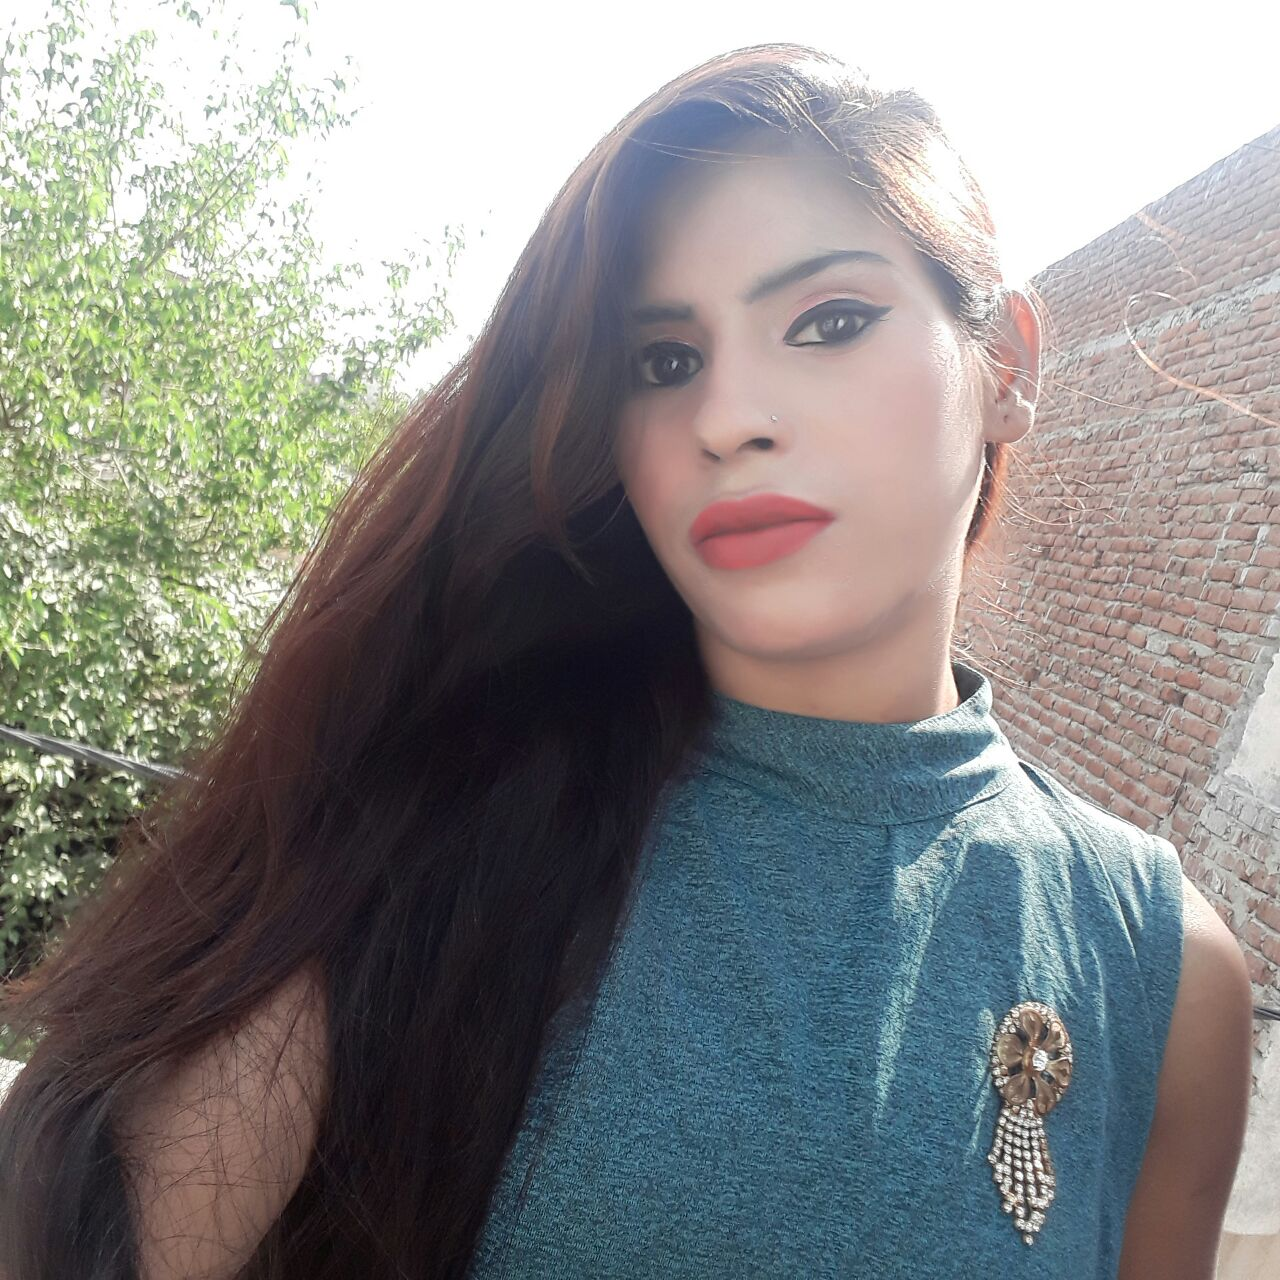 name laviya age 18 hight 5 skin colour fair hair colour brawon shoose size 6 comfortable all dress location delhi